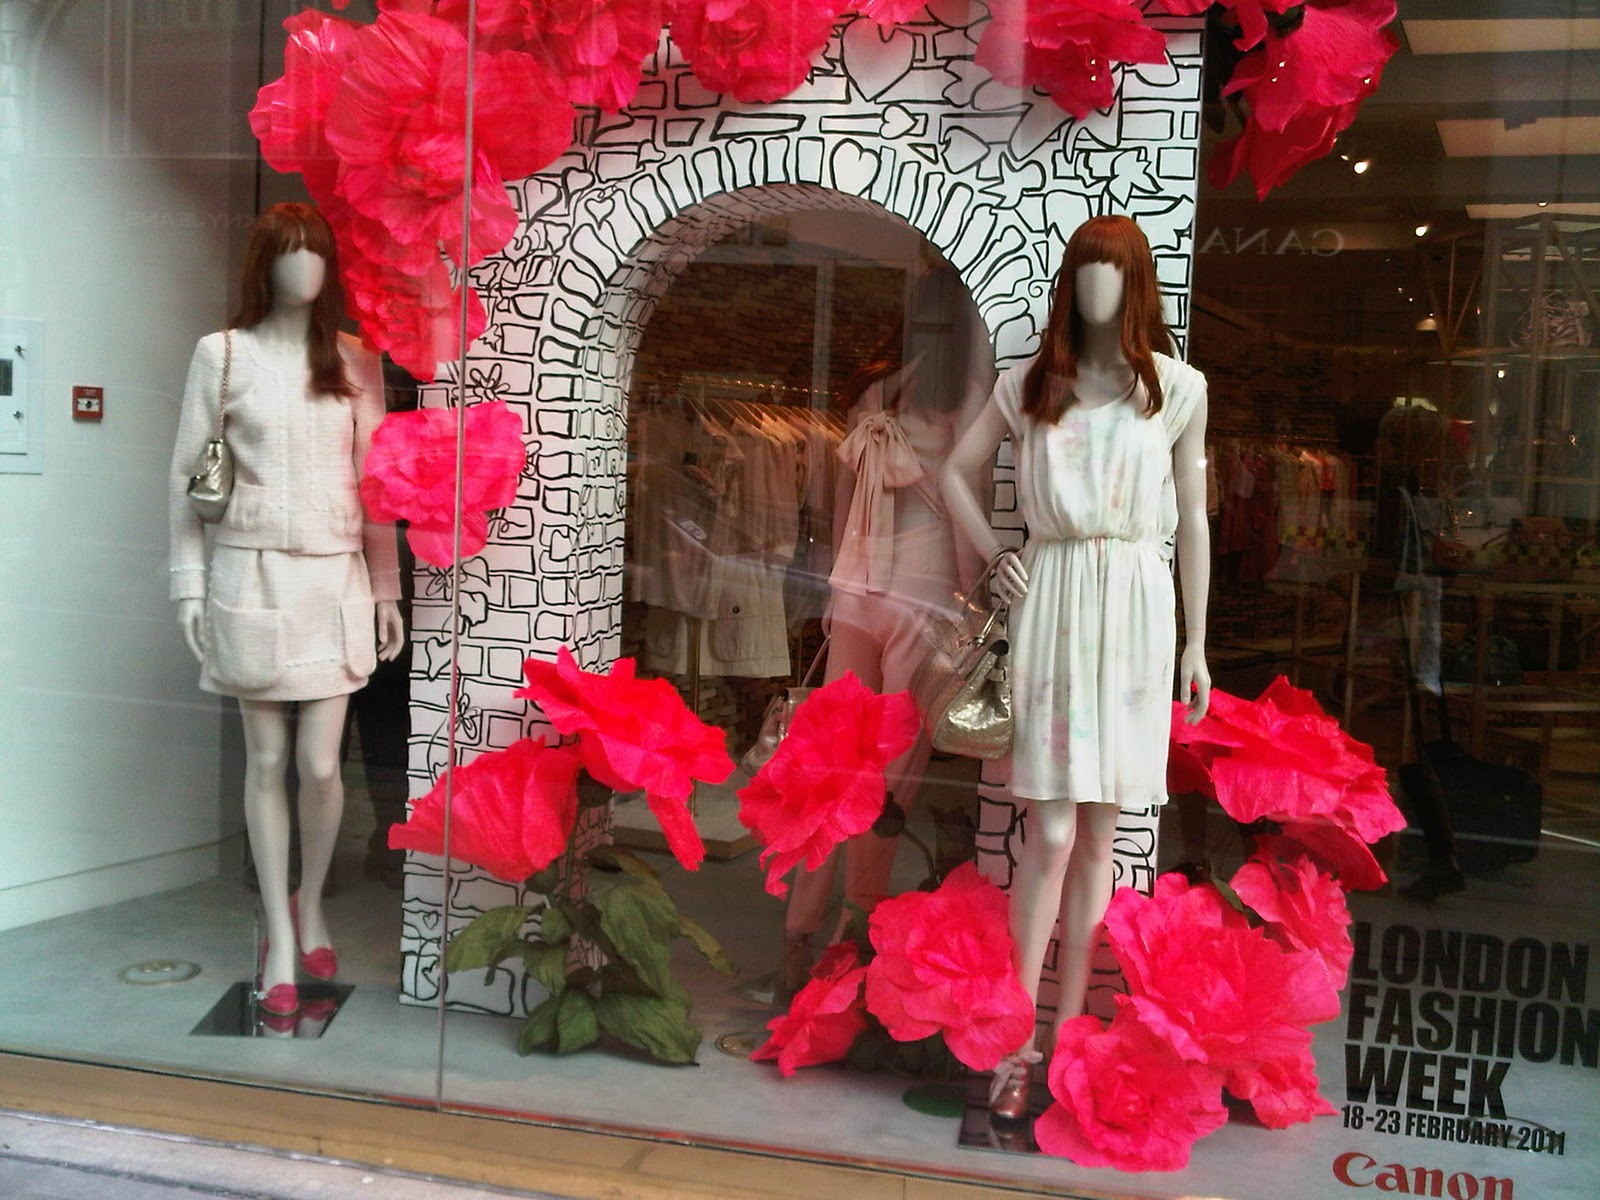 Mulberry is focused for Valentine's day, to decorate the window display with a secret garden theme, with pink, big flowers.